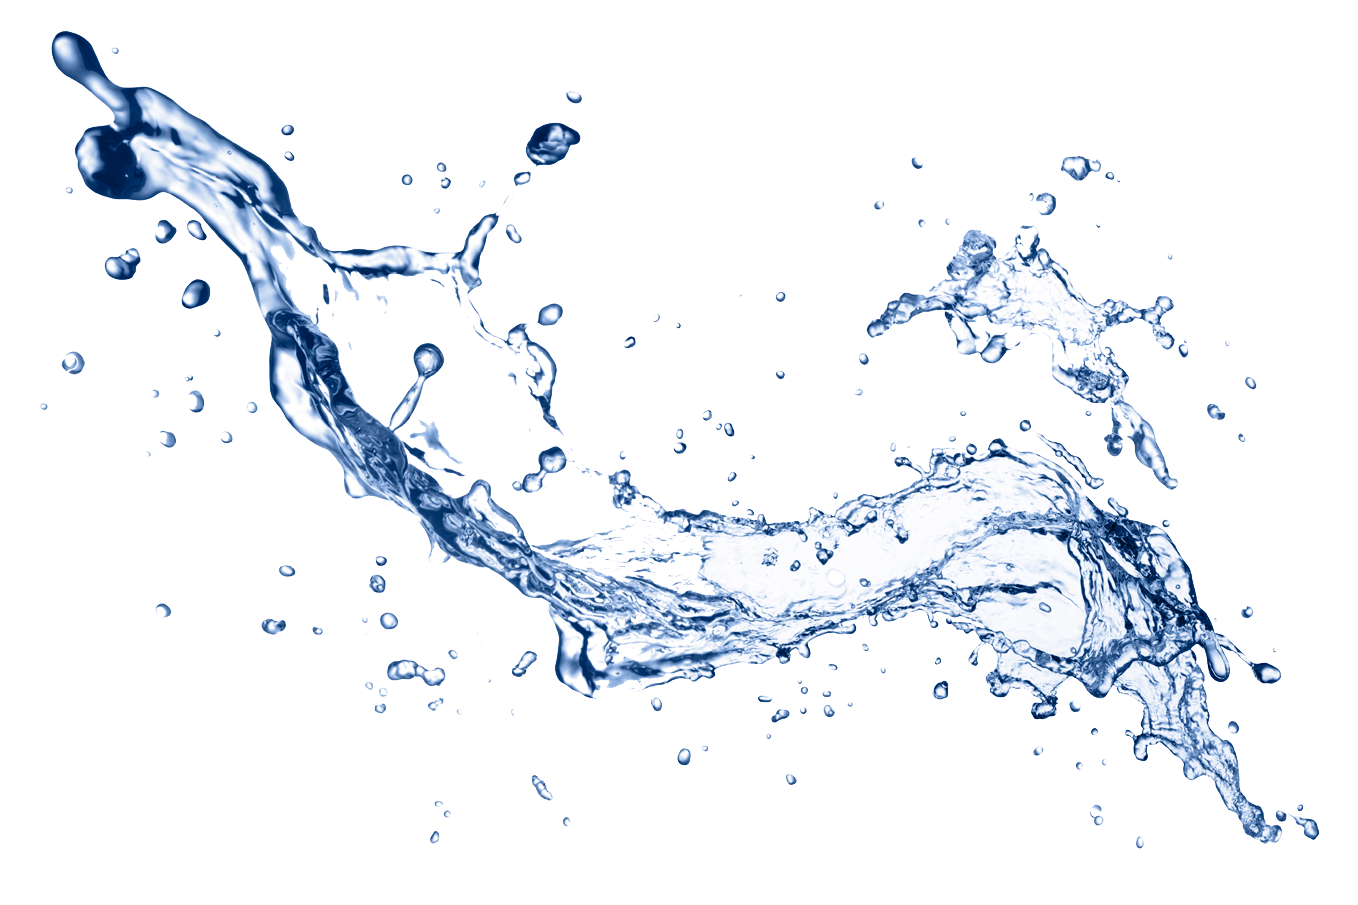 Water Transparent Image PNG Image